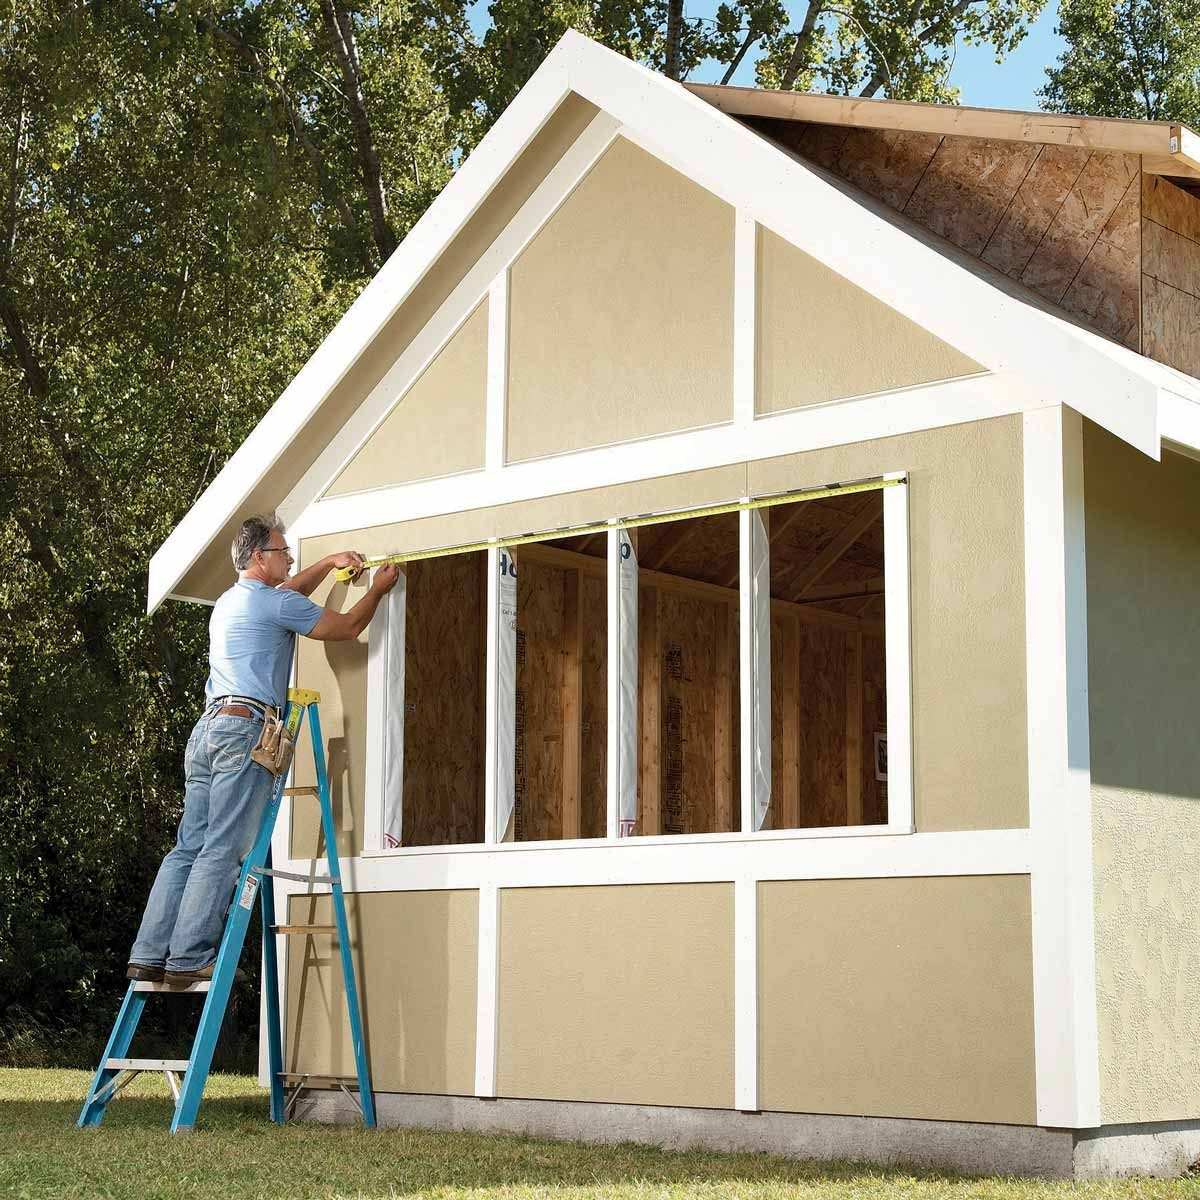 Dress Up a Plain Shed With Trim